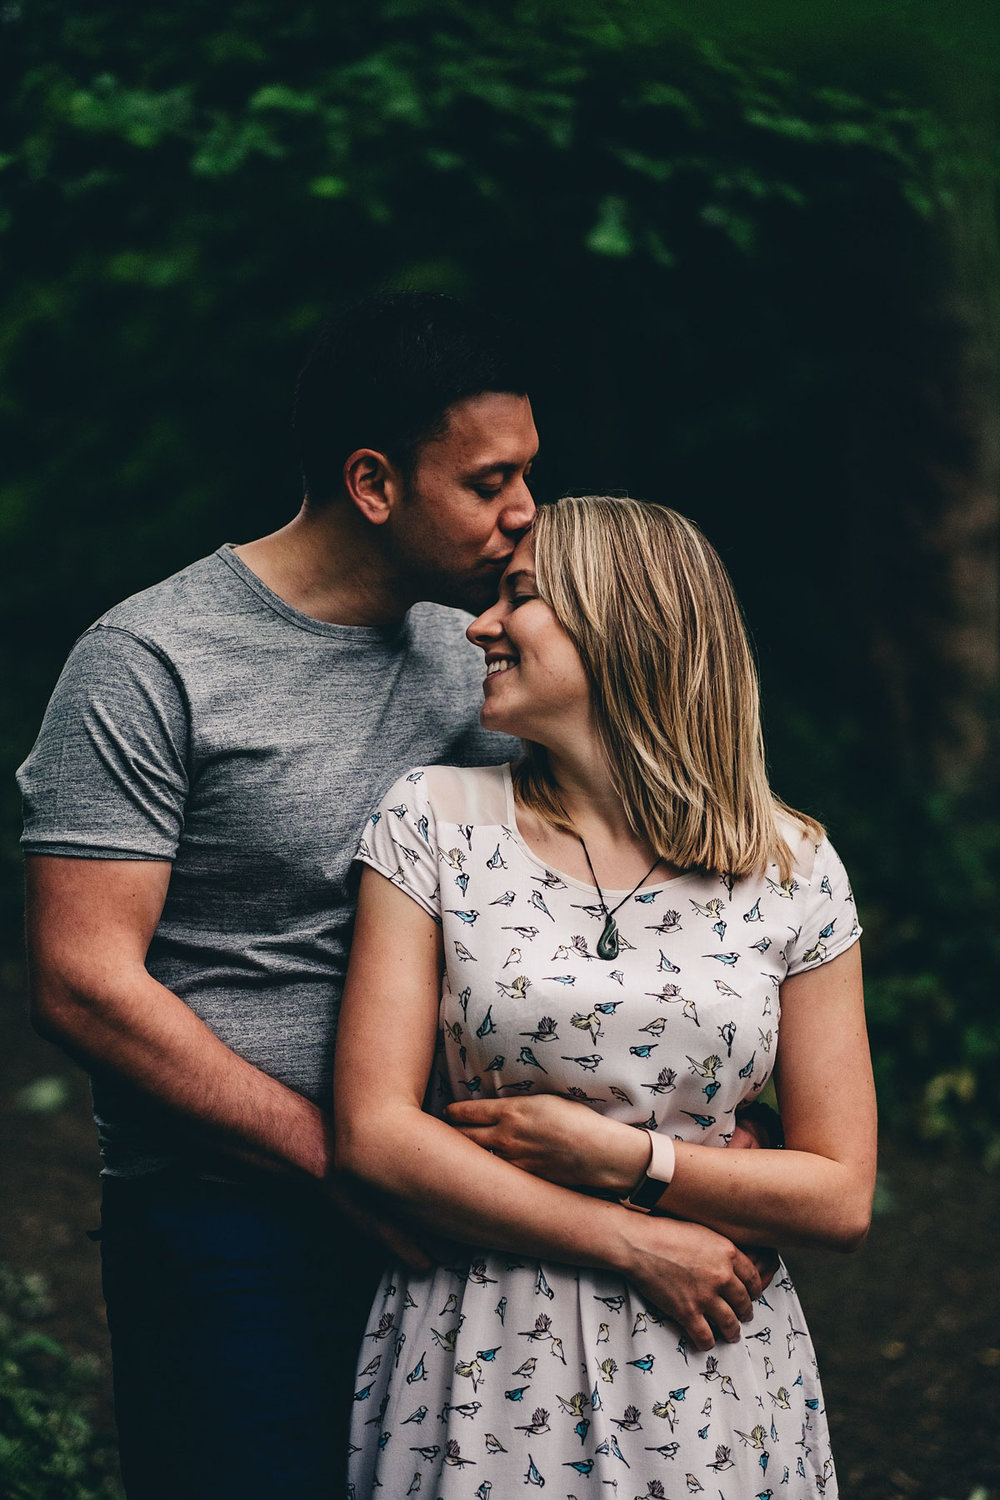 Couple kiss during engagement shoot in Holmebrook Valley Park, Chesterfield